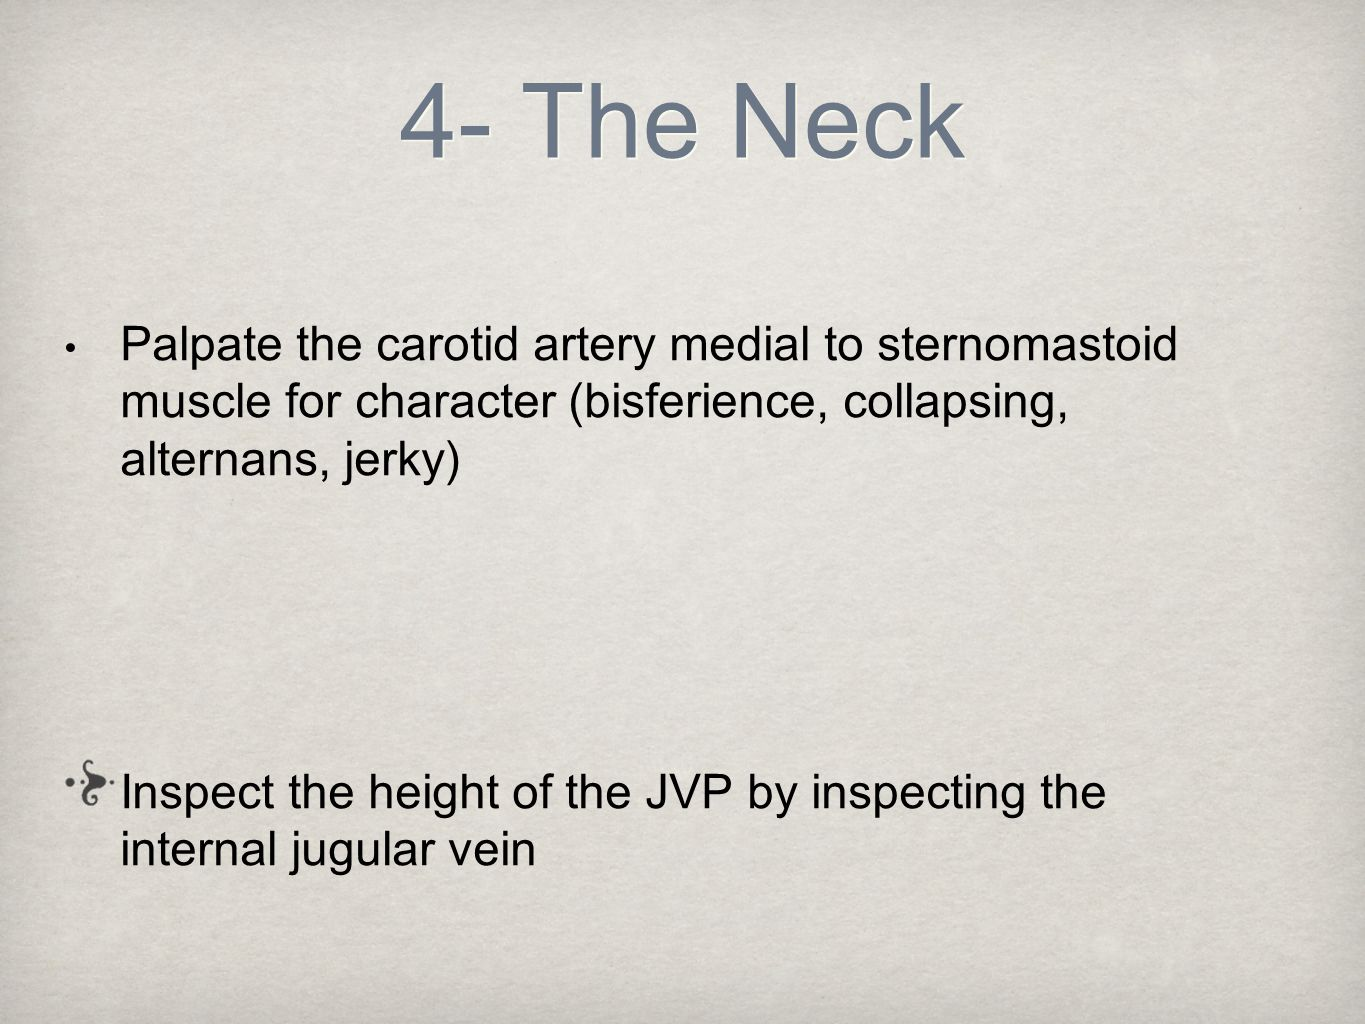 4- The Neck Palpate the carotid artery medial to sternomastoid muscle for character (bisferience, collapsing, alternans, jerky)